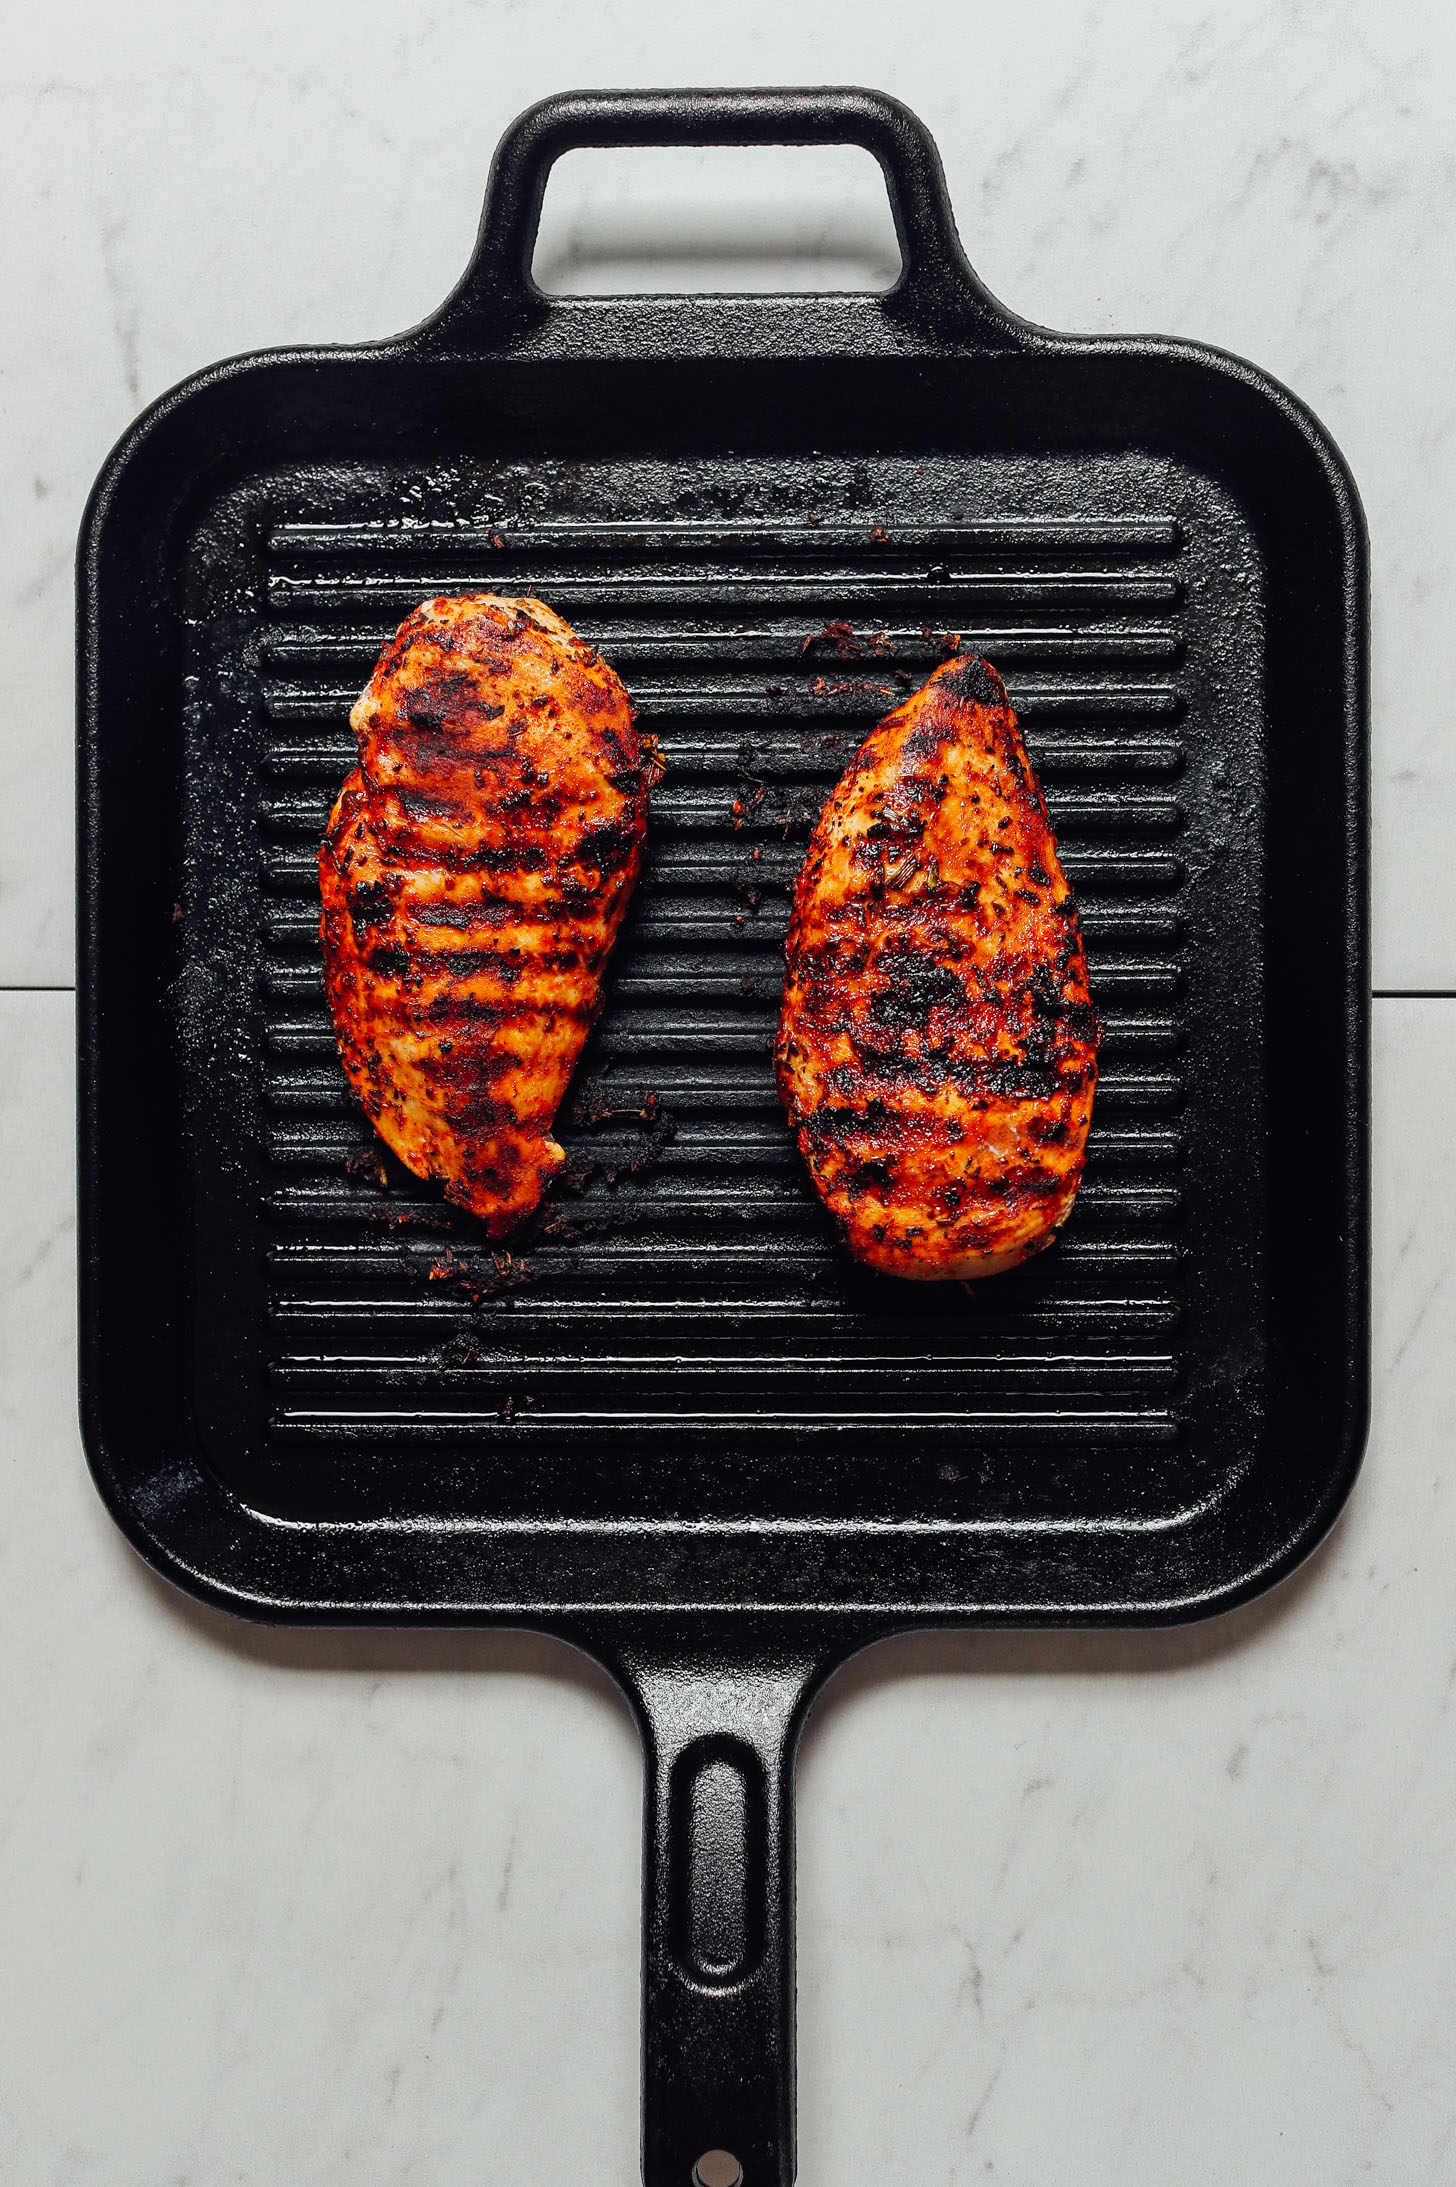 Using a grill pan to cook Marinated Grilled Chicken Breasts